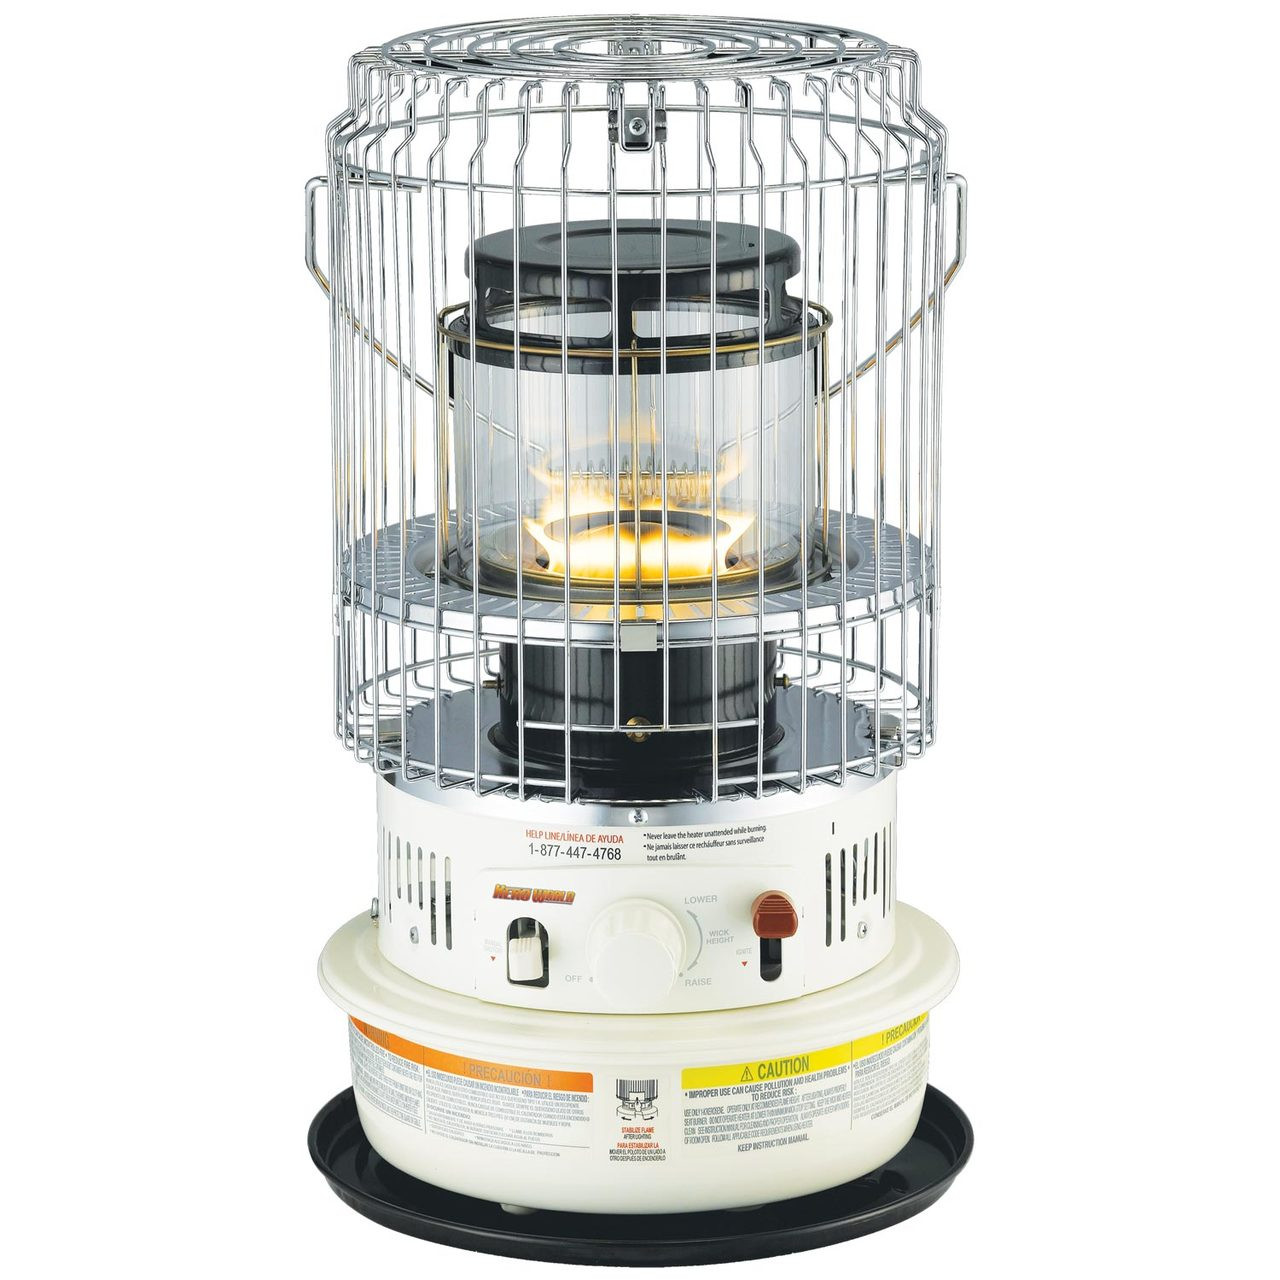 Kero World Compact Convection 10,500 Btu\'s Portable Indoor Kerosene ...